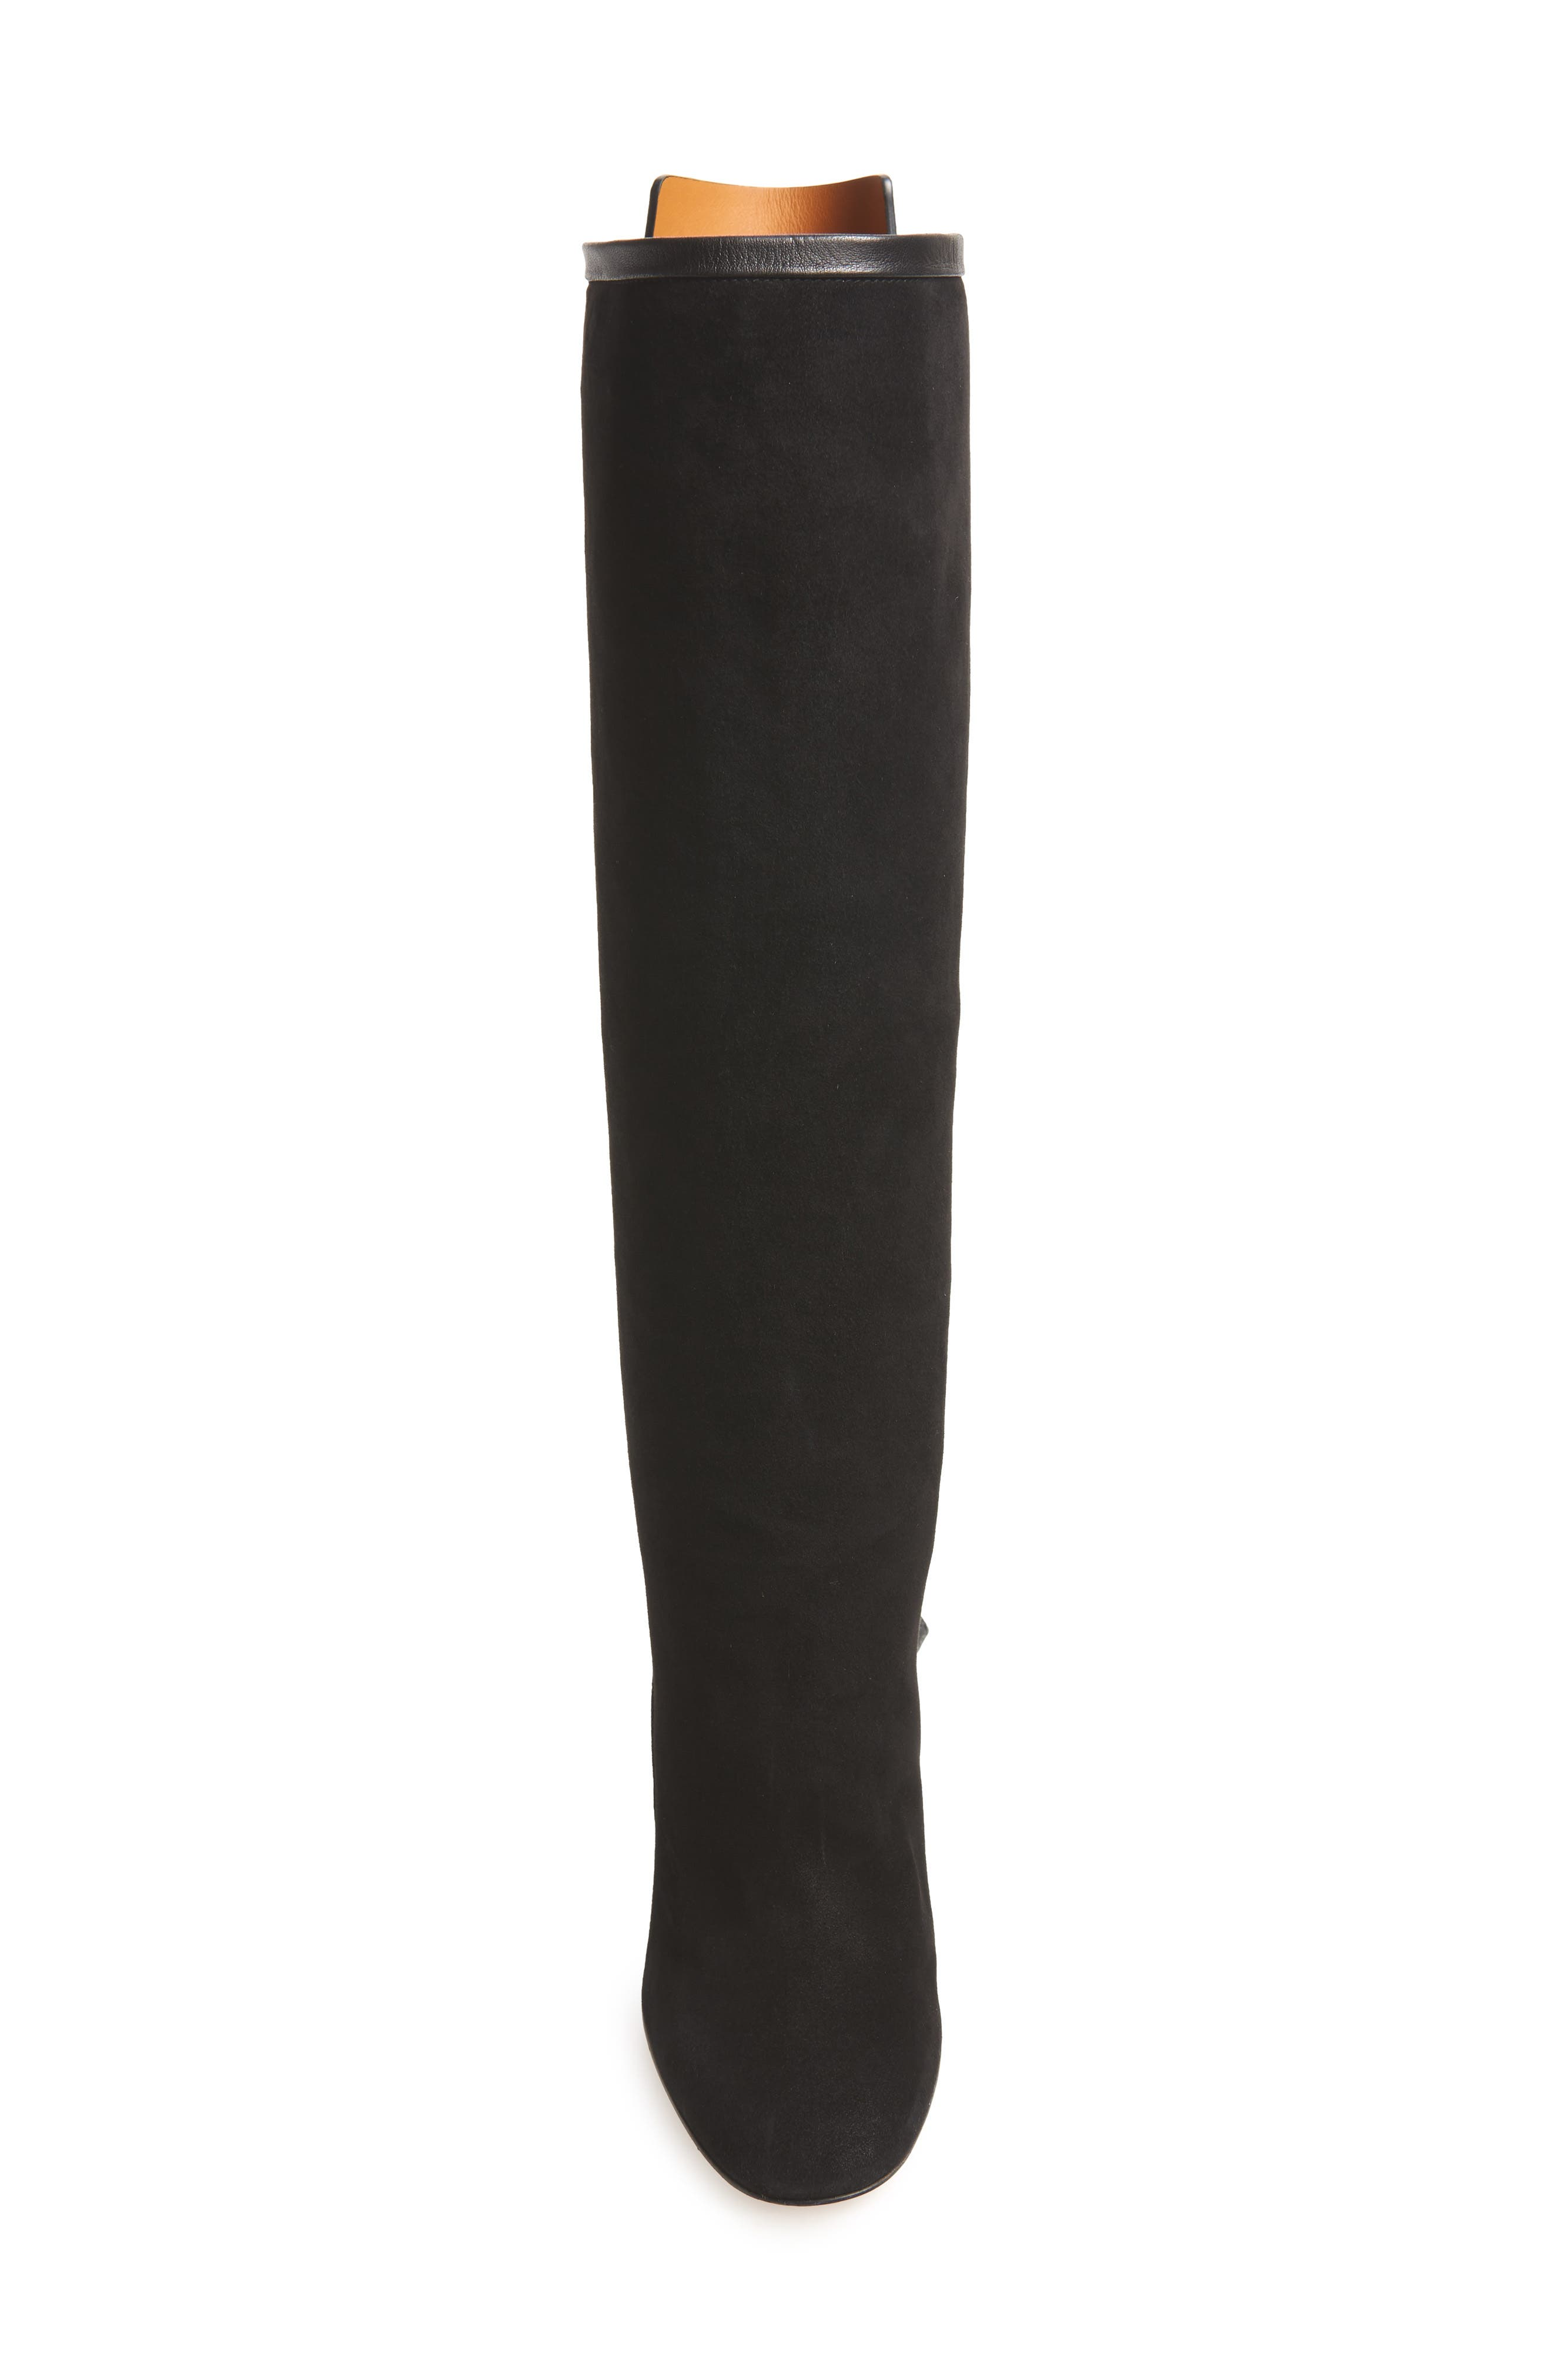 Charlie Knee High Boot,                             Alternate thumbnail 4, color,                             002